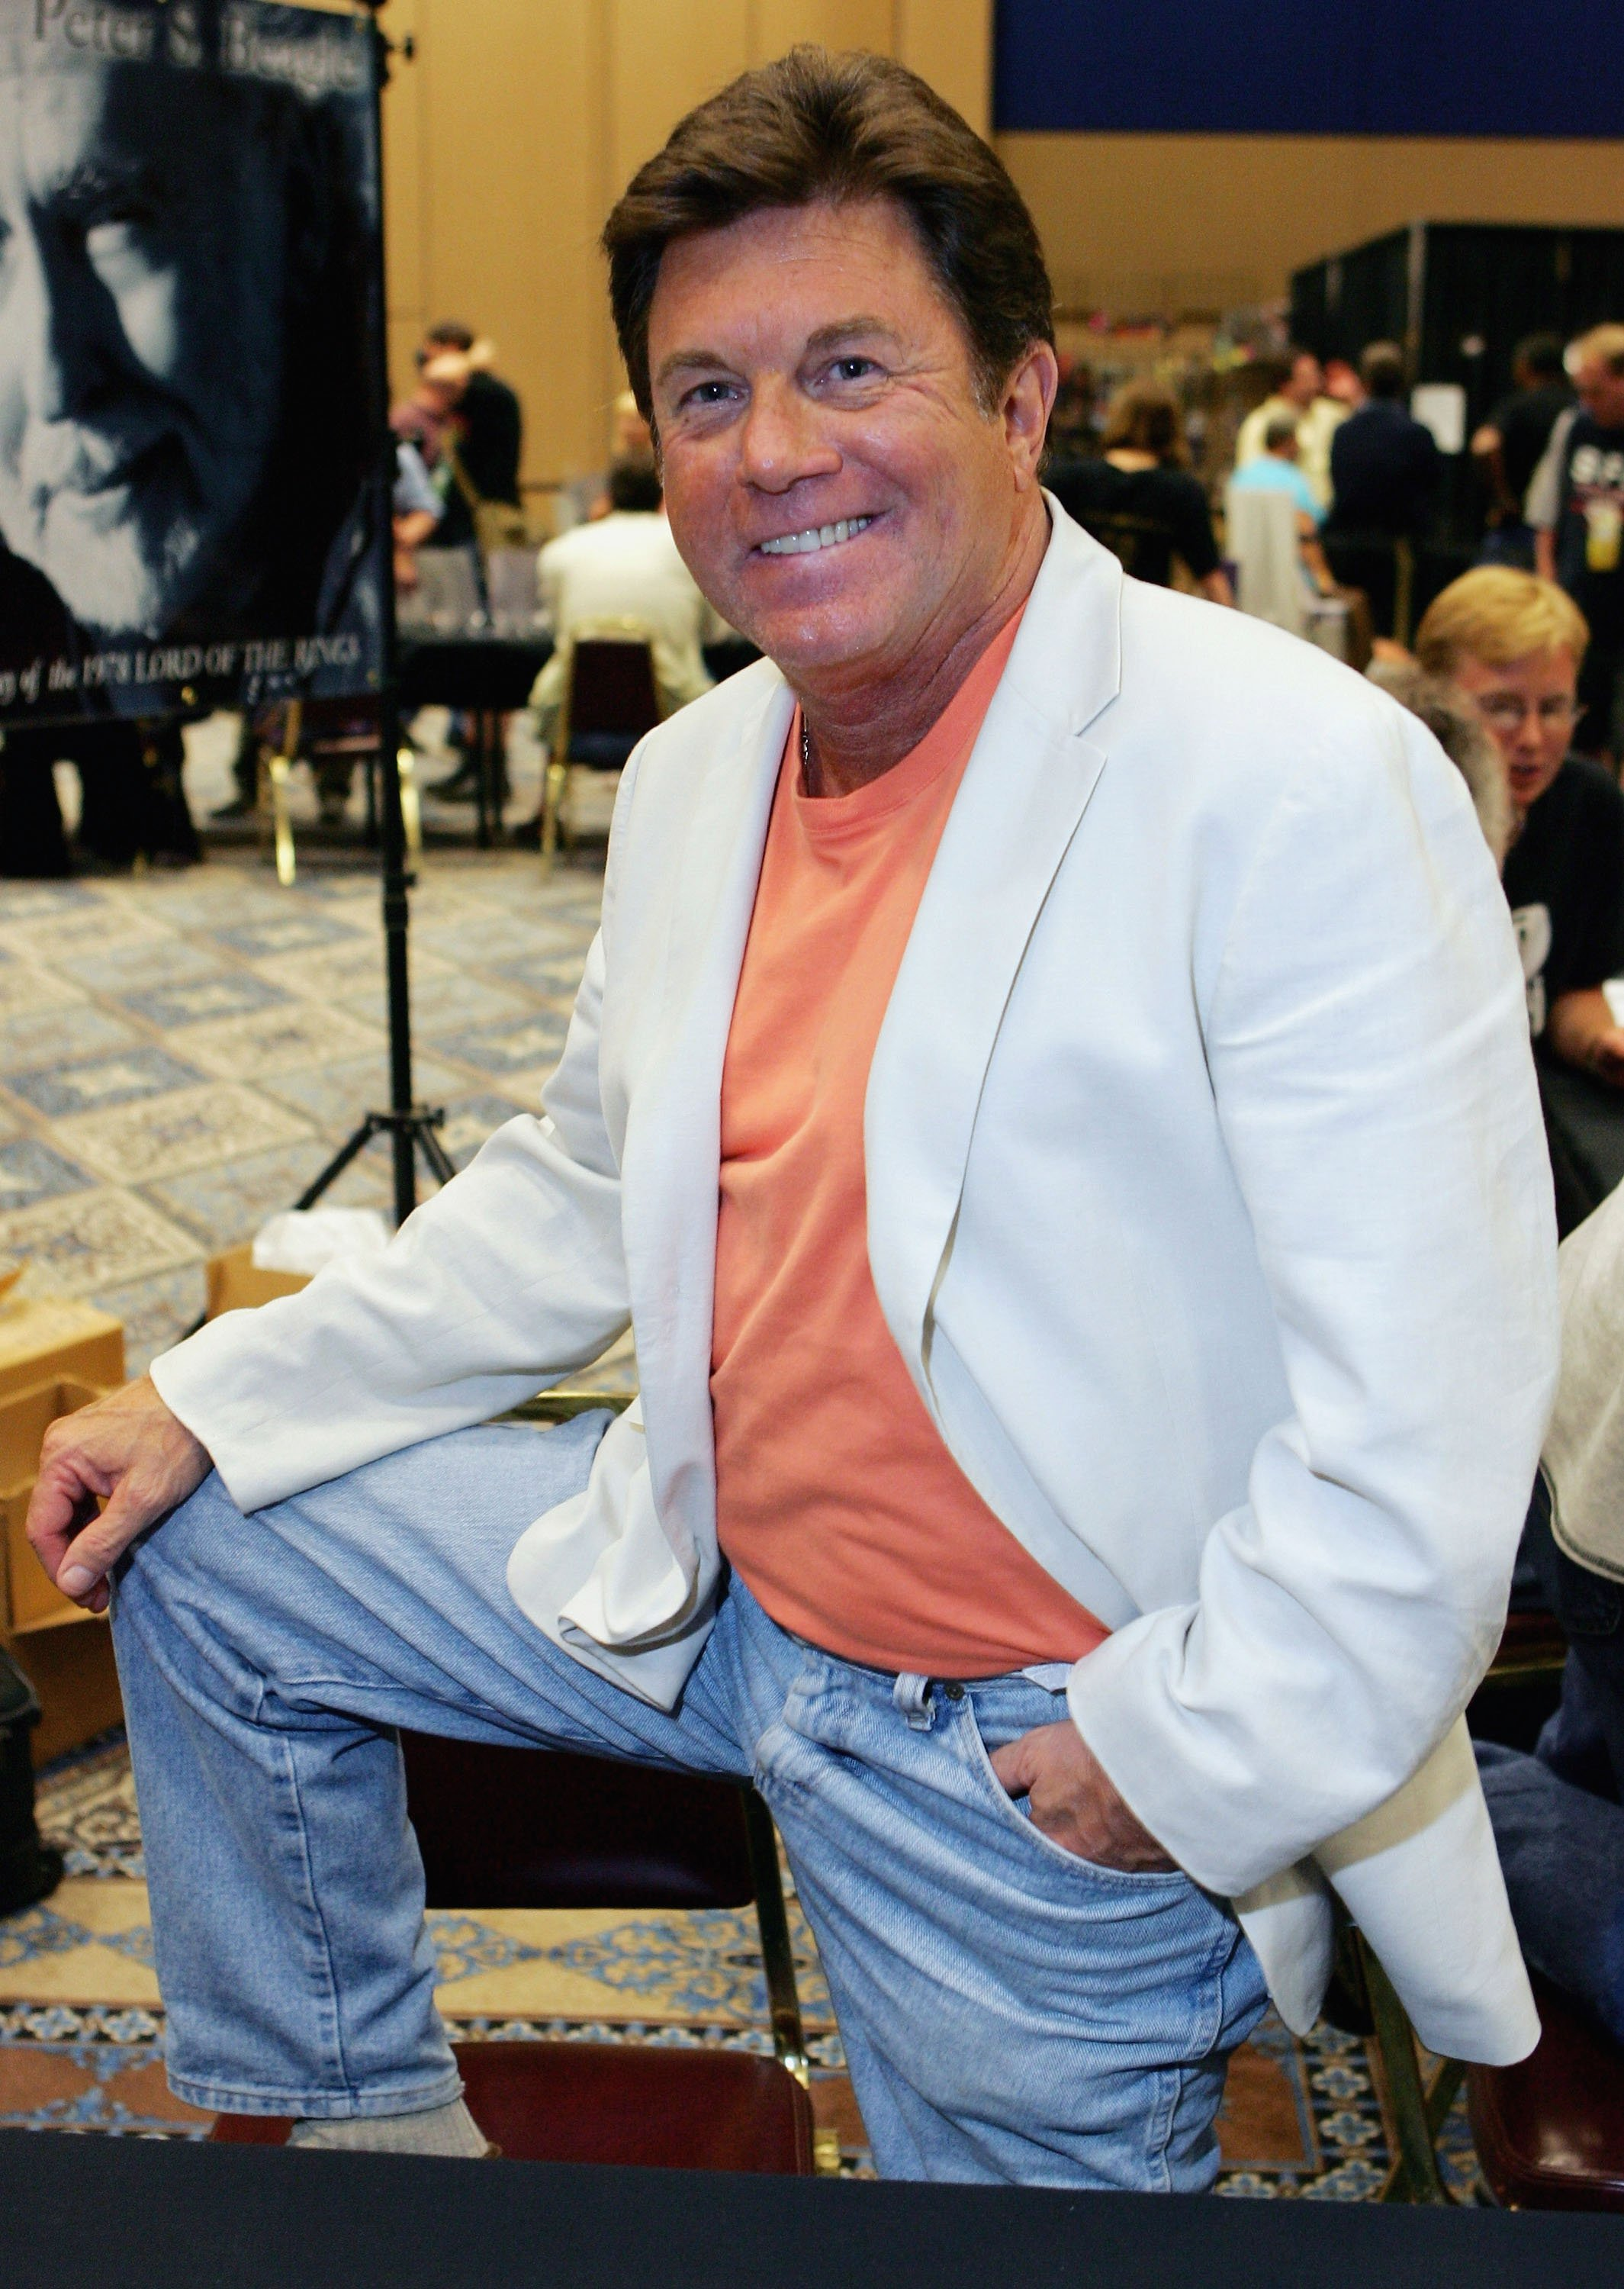 Larry Manetti poses at the Star Trek convention at the Las Vegas Hilton August 11, 2005 | Photo: GettyImages